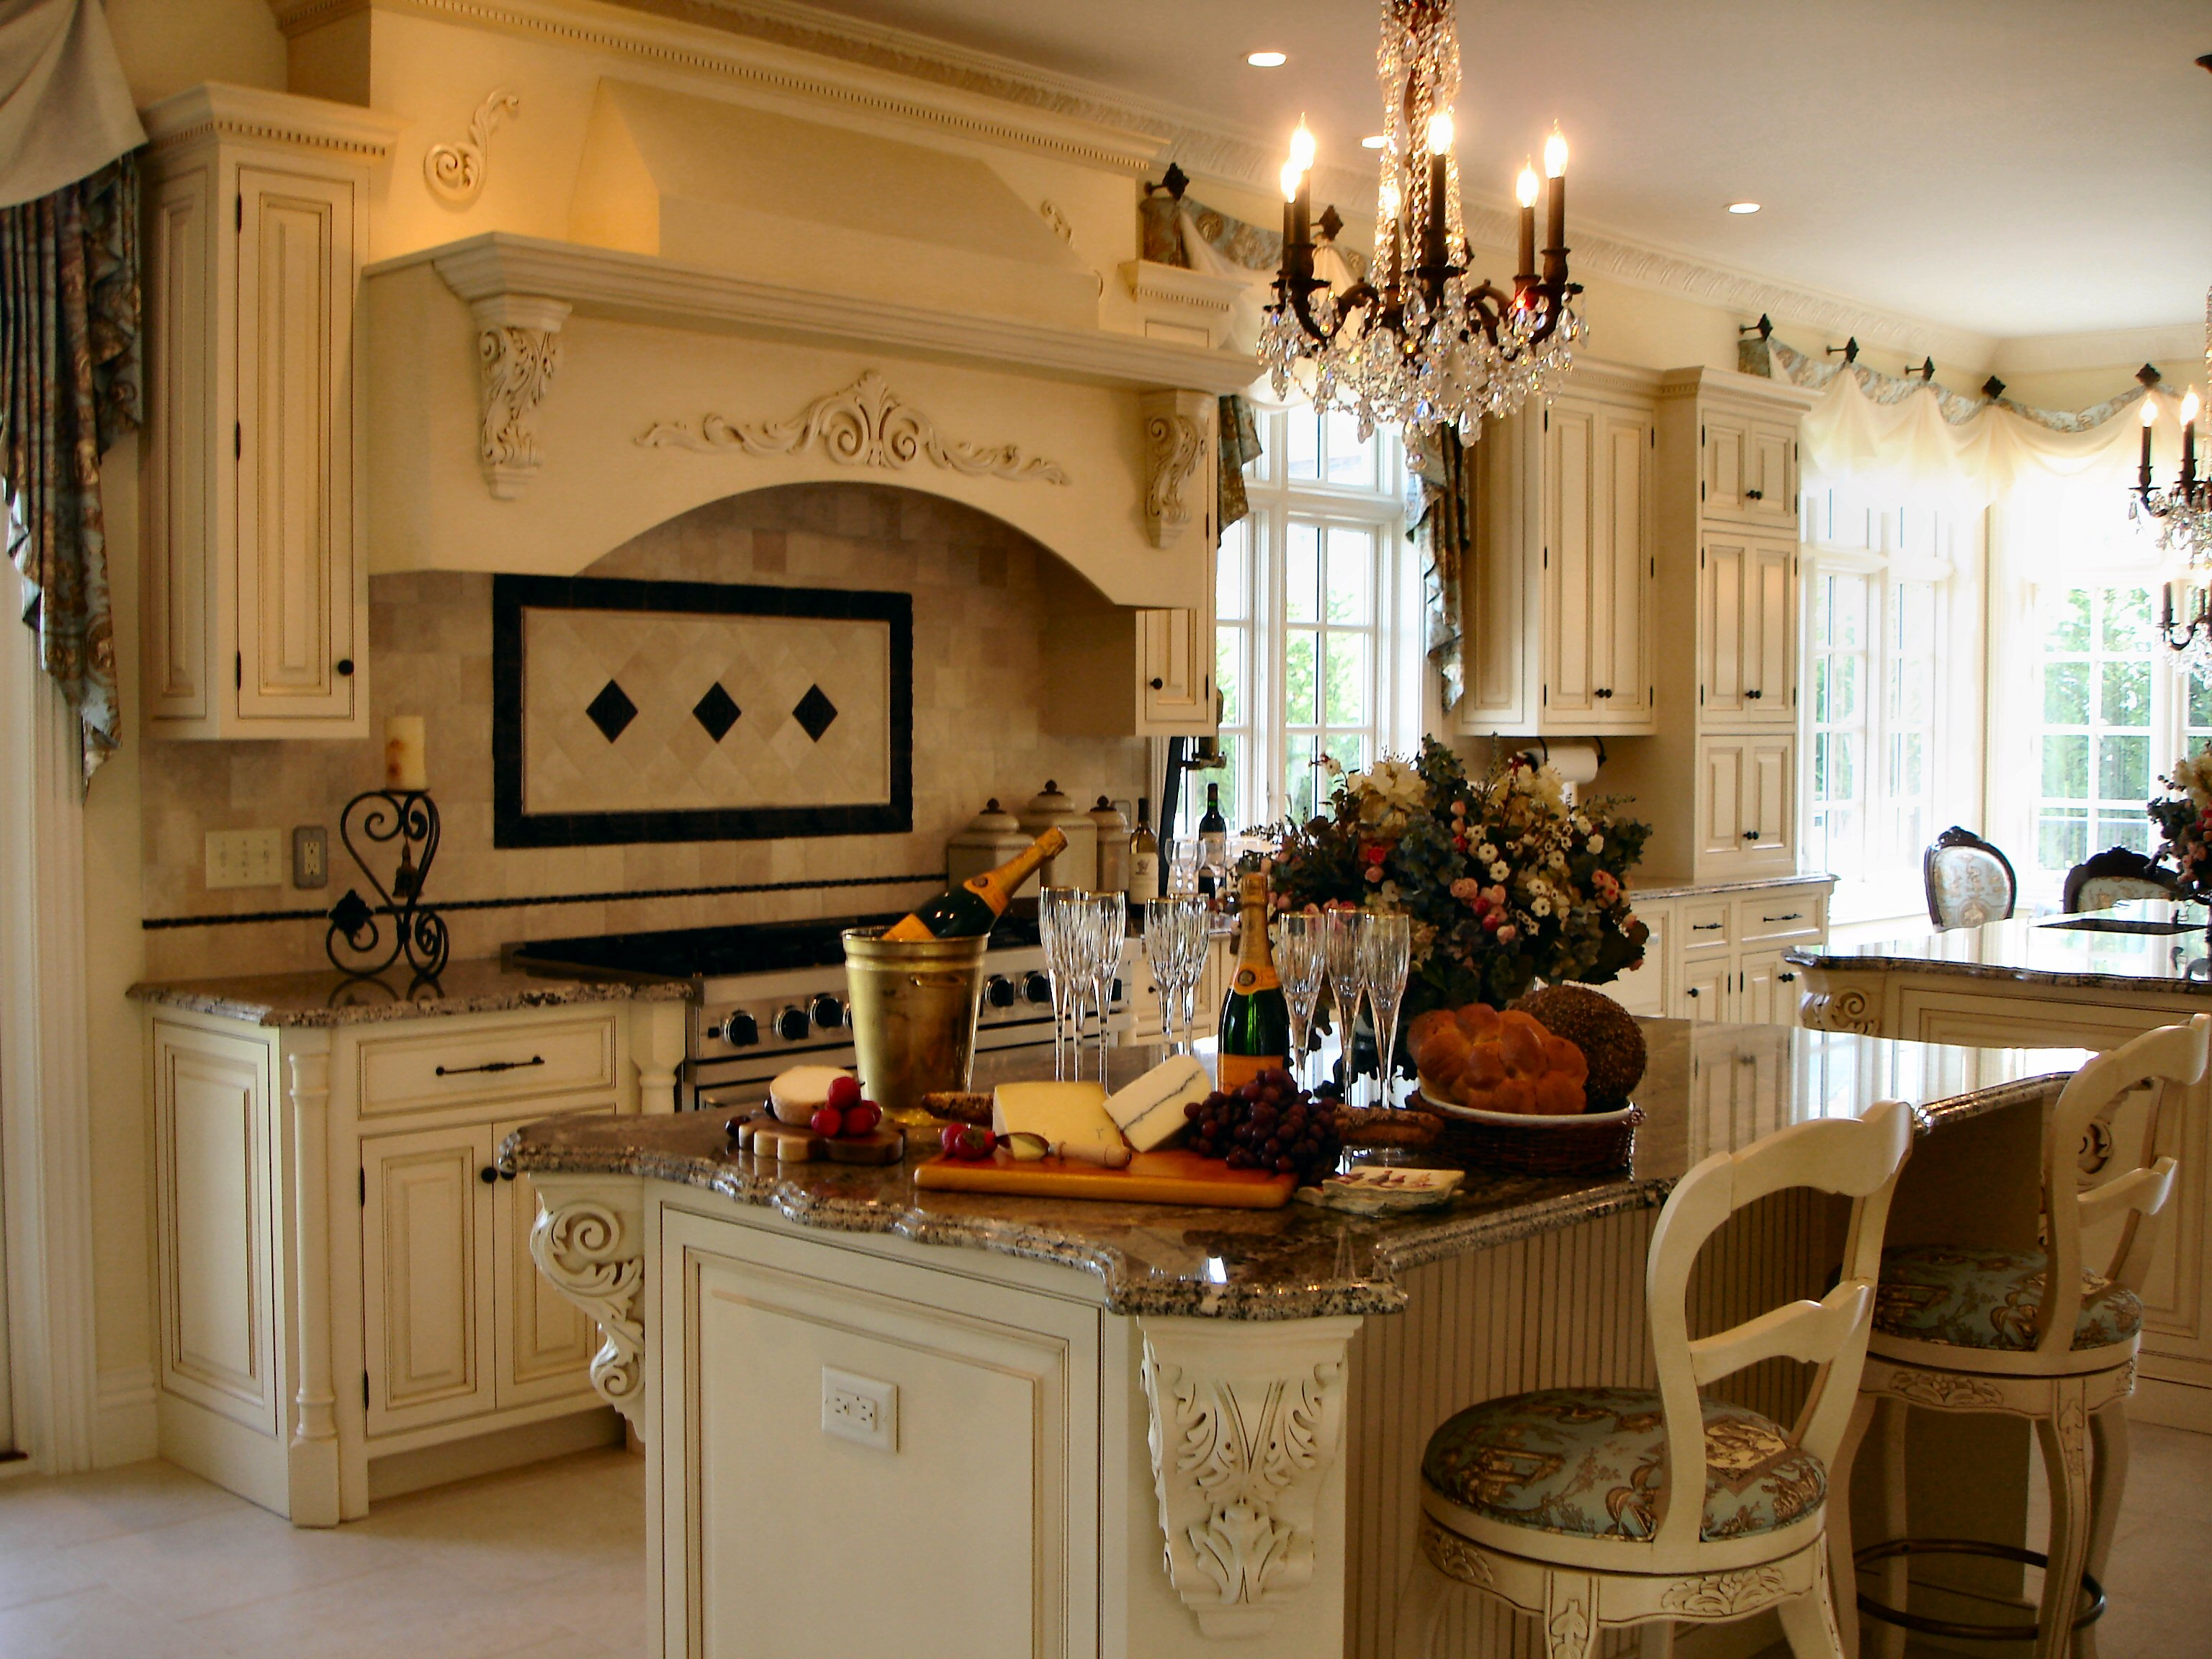 Nj Kitchen Design Nj Kitchen Design & Remodeling  Design Build Pros